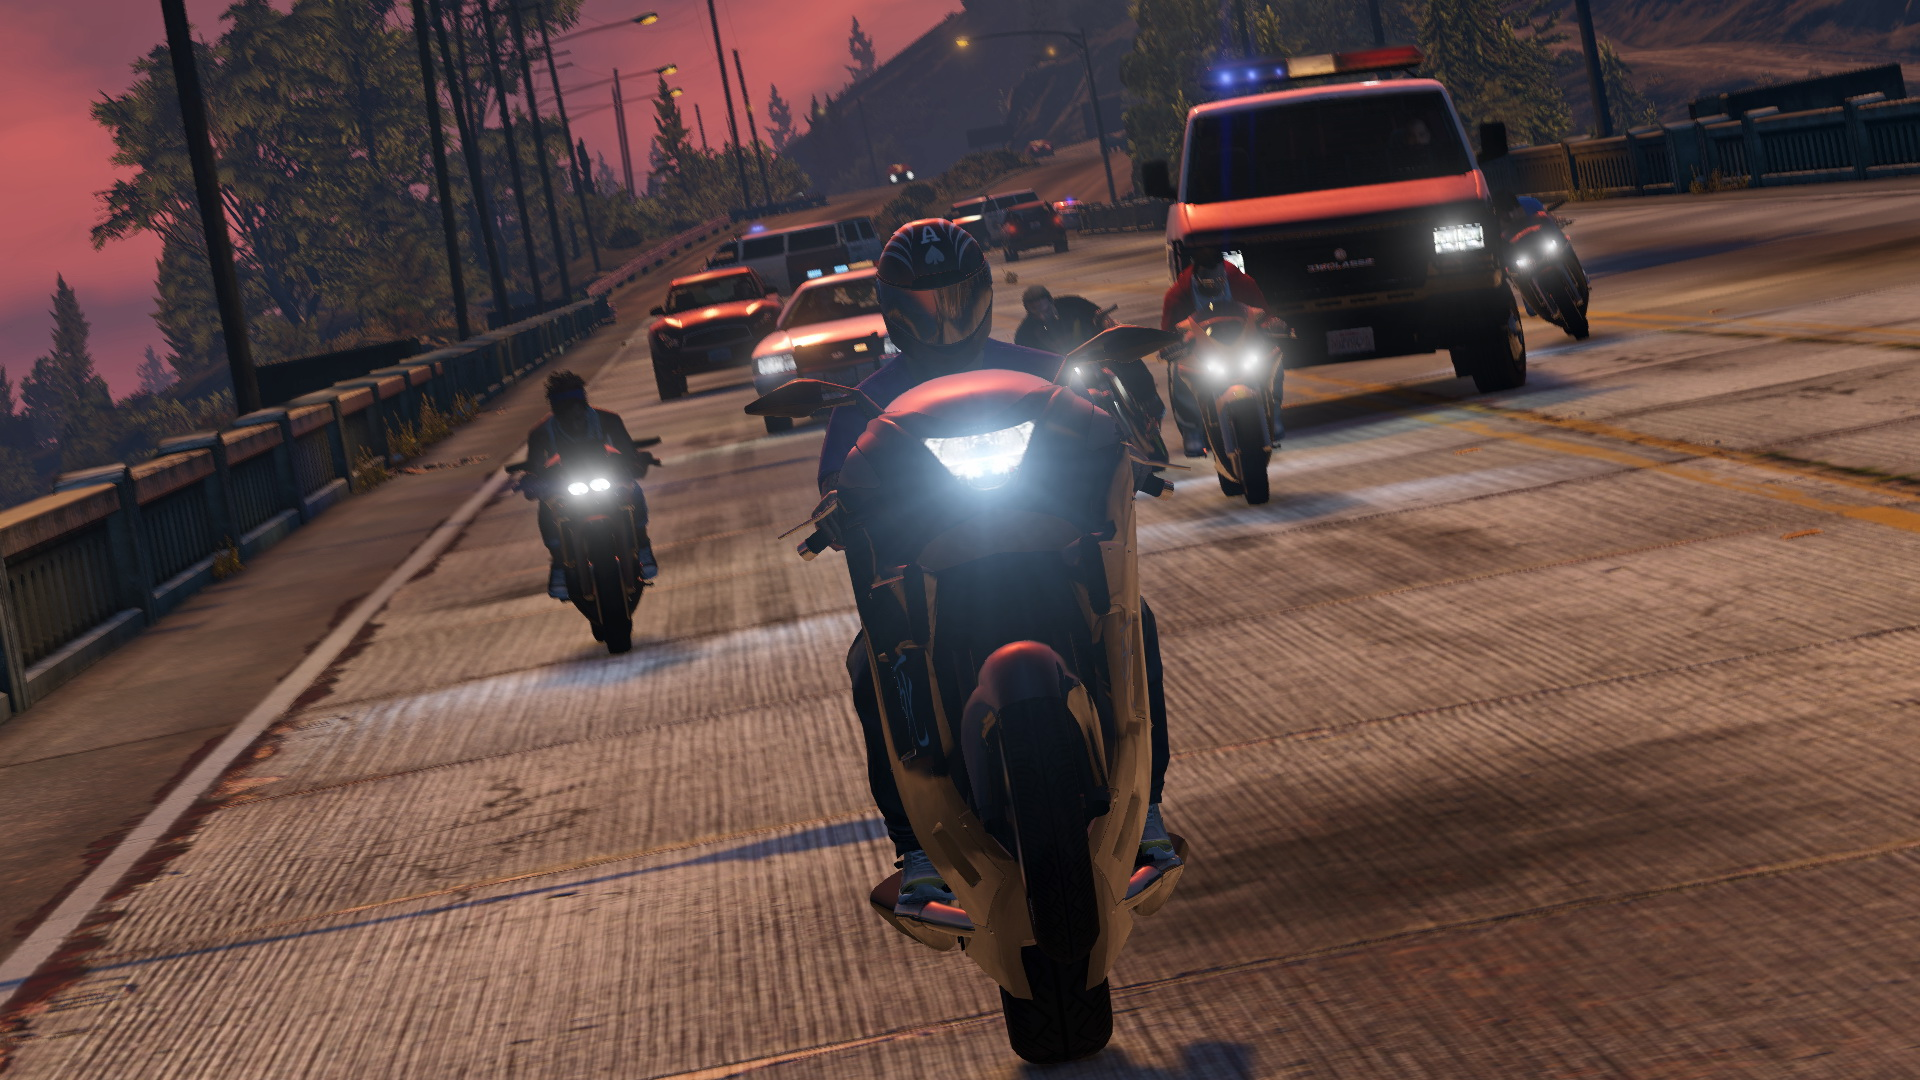 RSG_GTA Online_NG_Screenshot_016